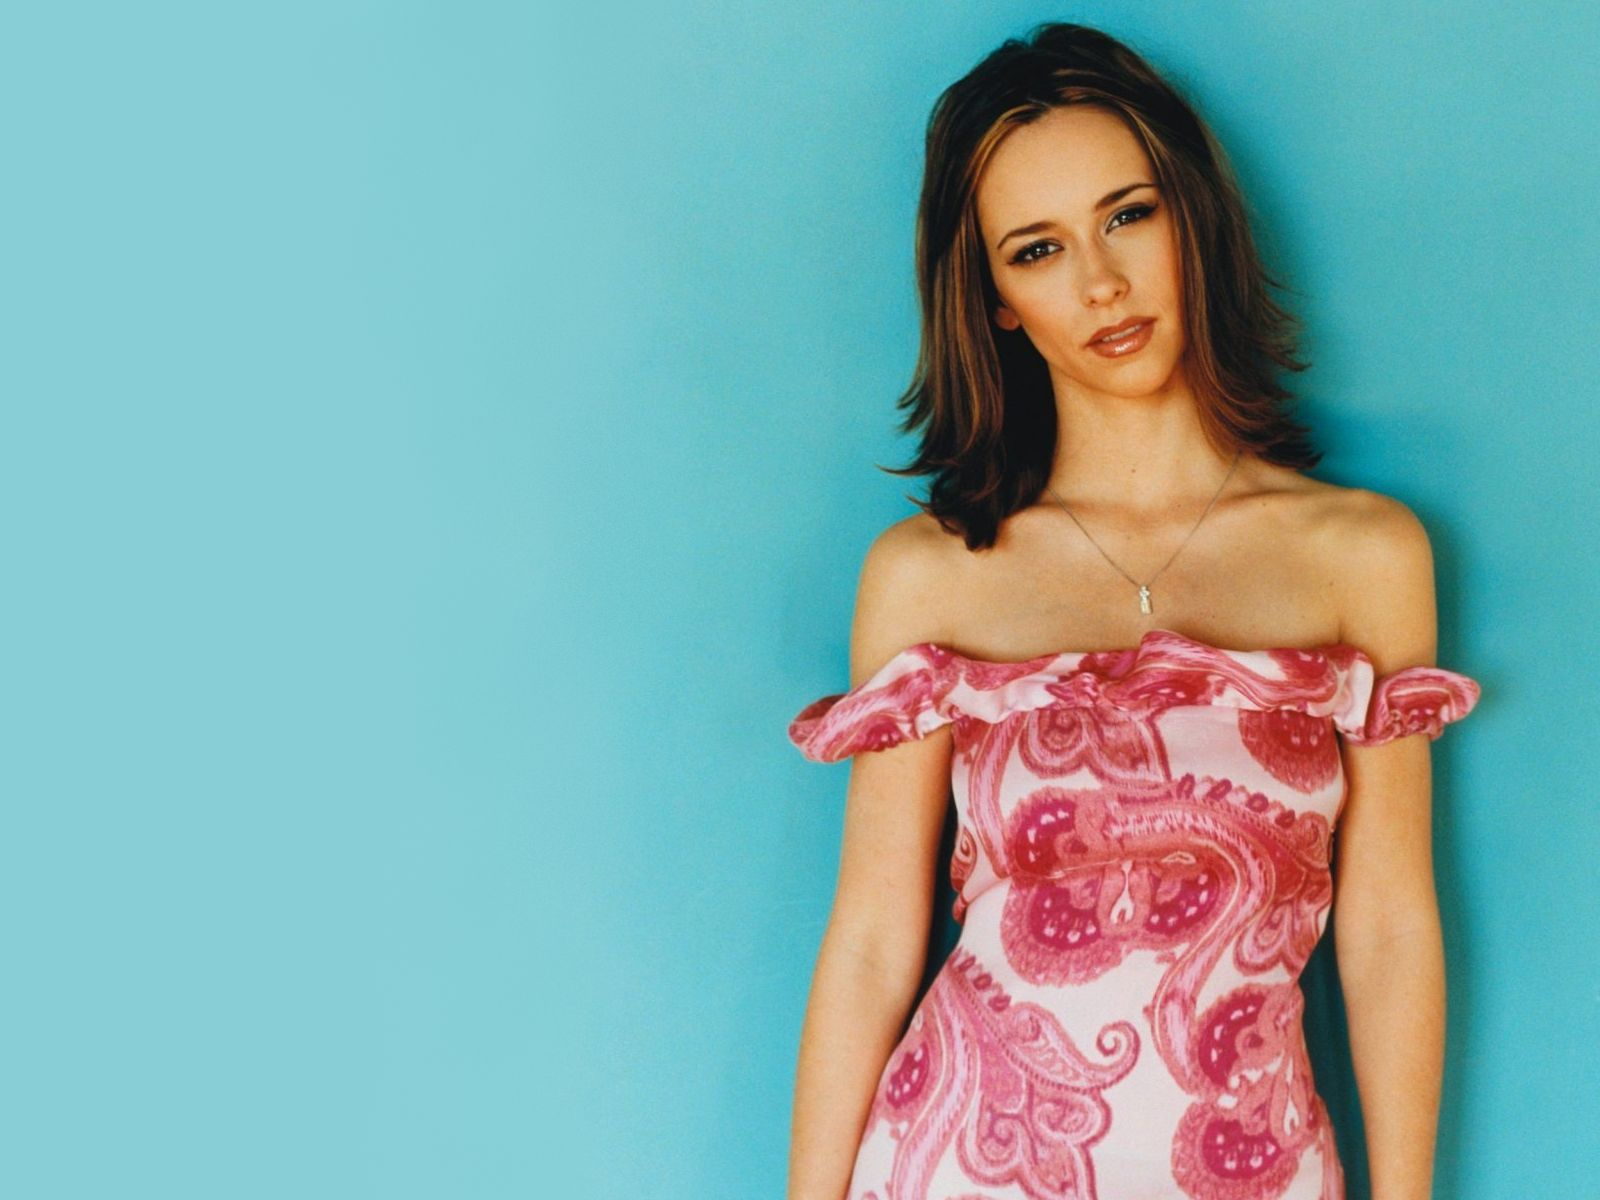 Jennifer Love Hewitt Wallpapers High Resolution and Quality Download